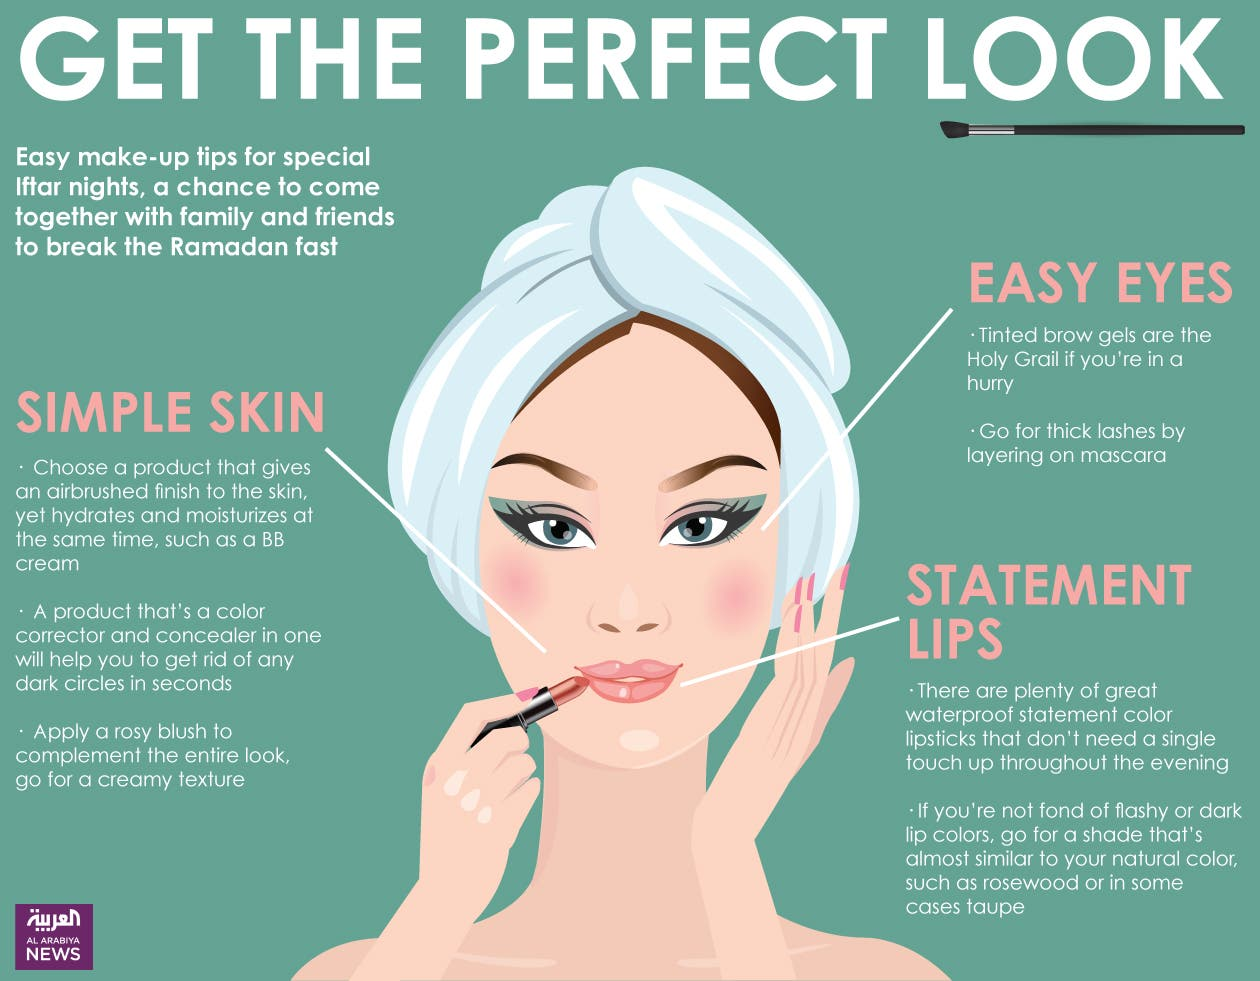 Infographic: Get the perfect look